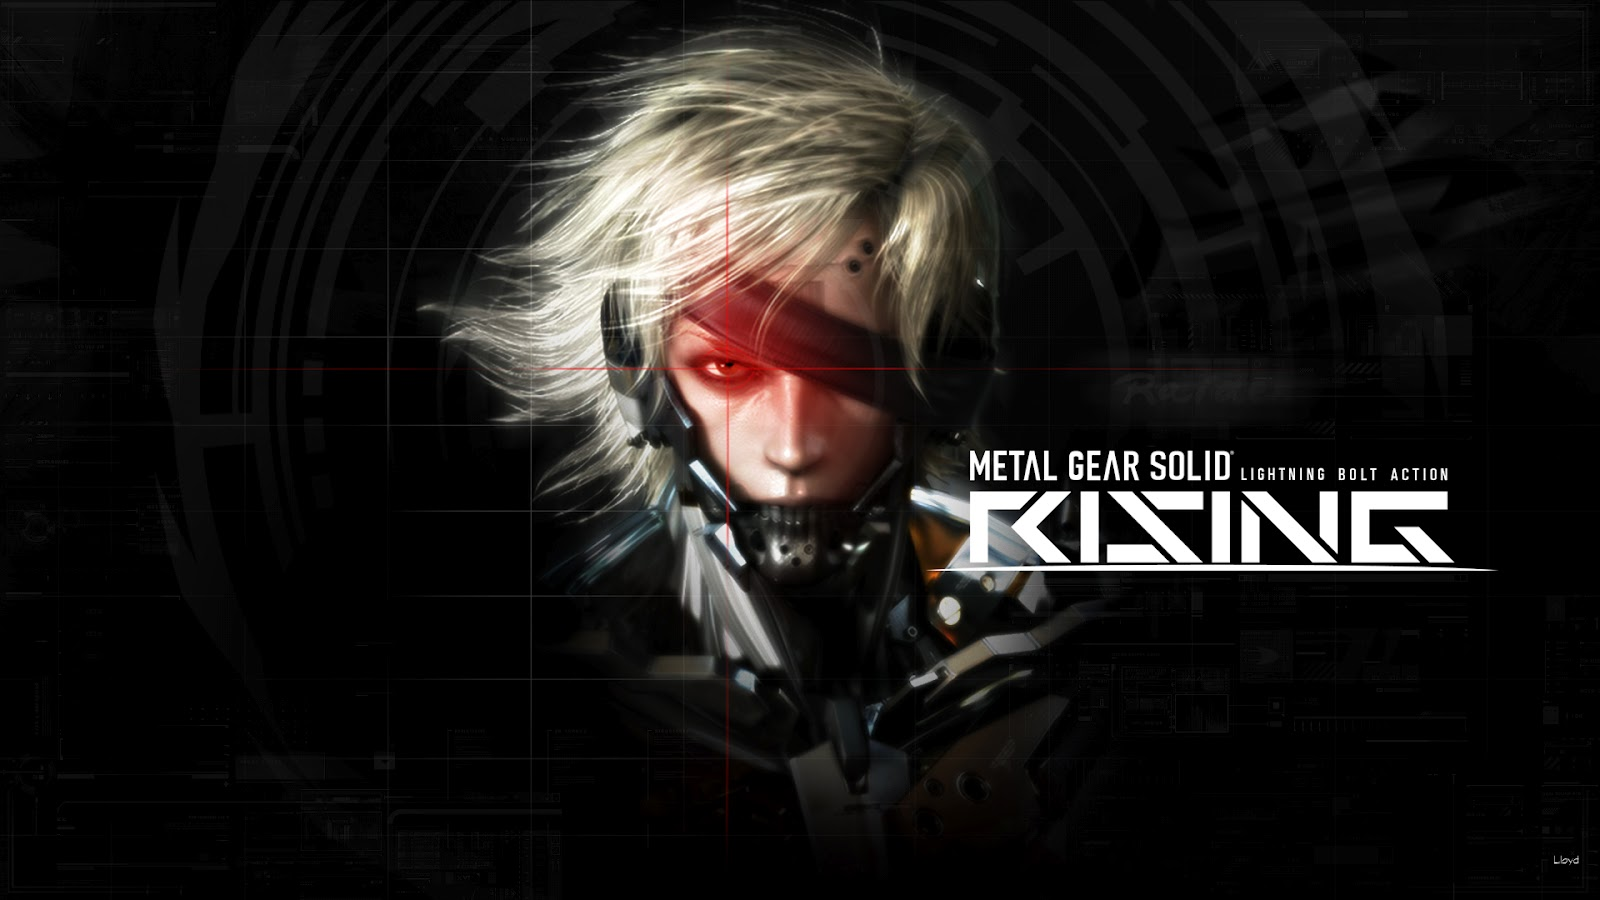 Metal Gear Solid Rising Wp by igotgame1075 Metal Gear Rising: Revengeance Wallpapers in HD